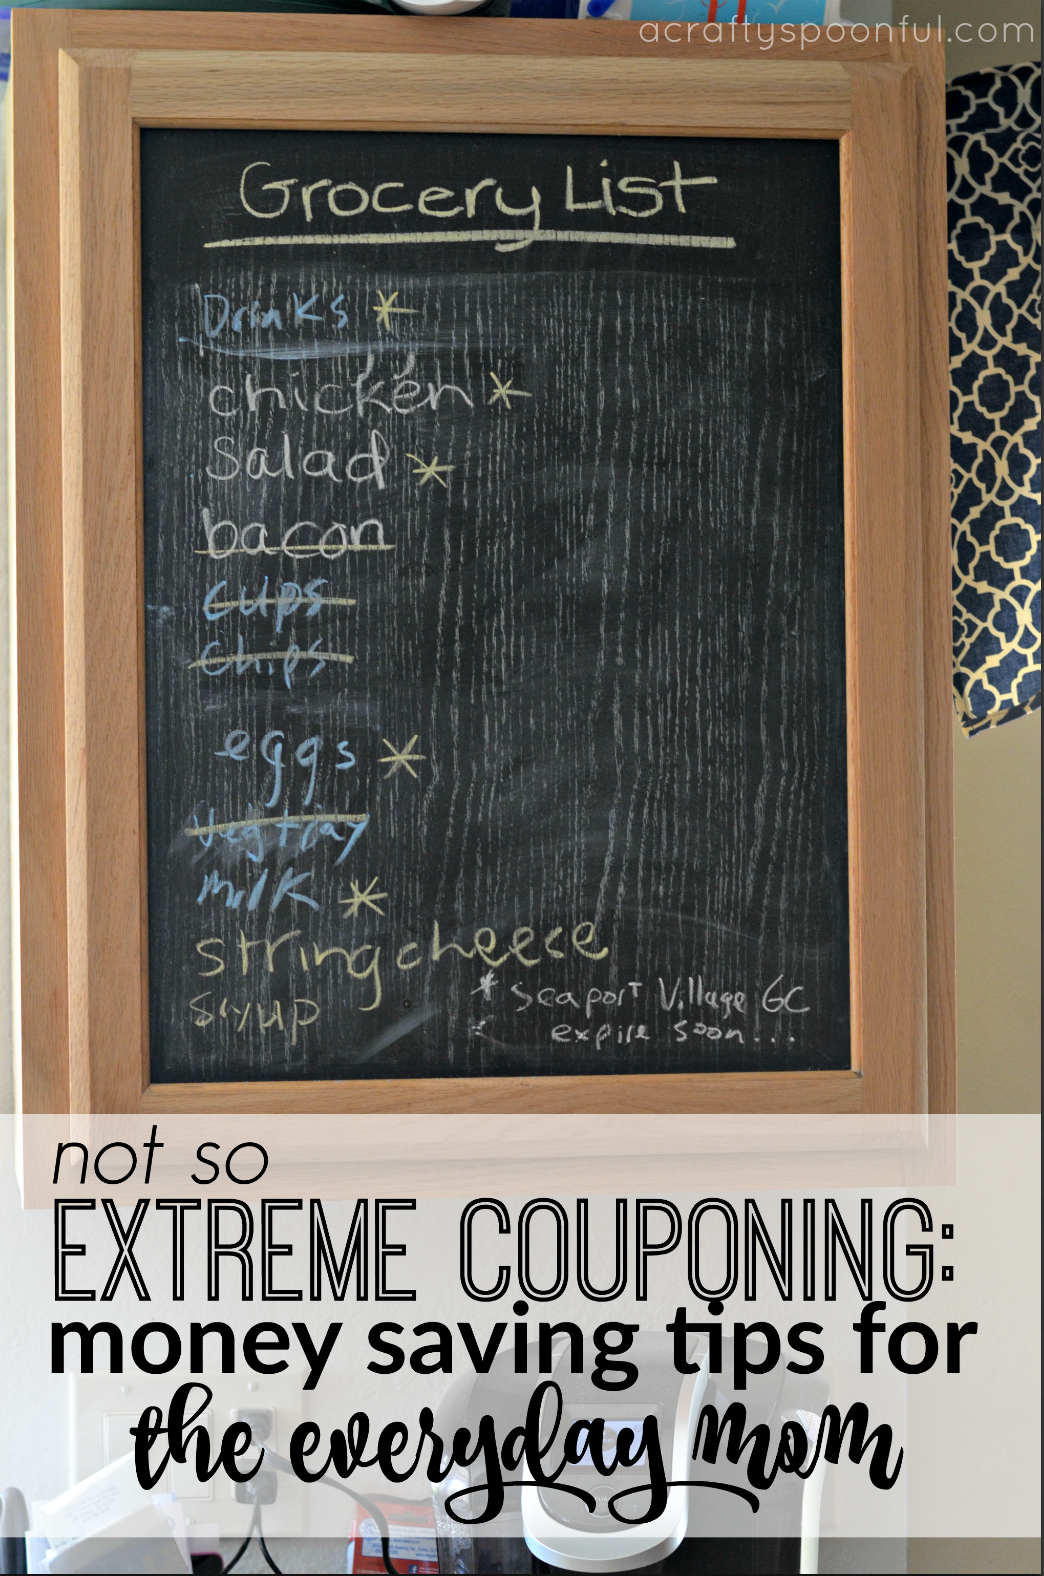 Not So Extreme Couponing Money Saving Tips For The Everyday Mom